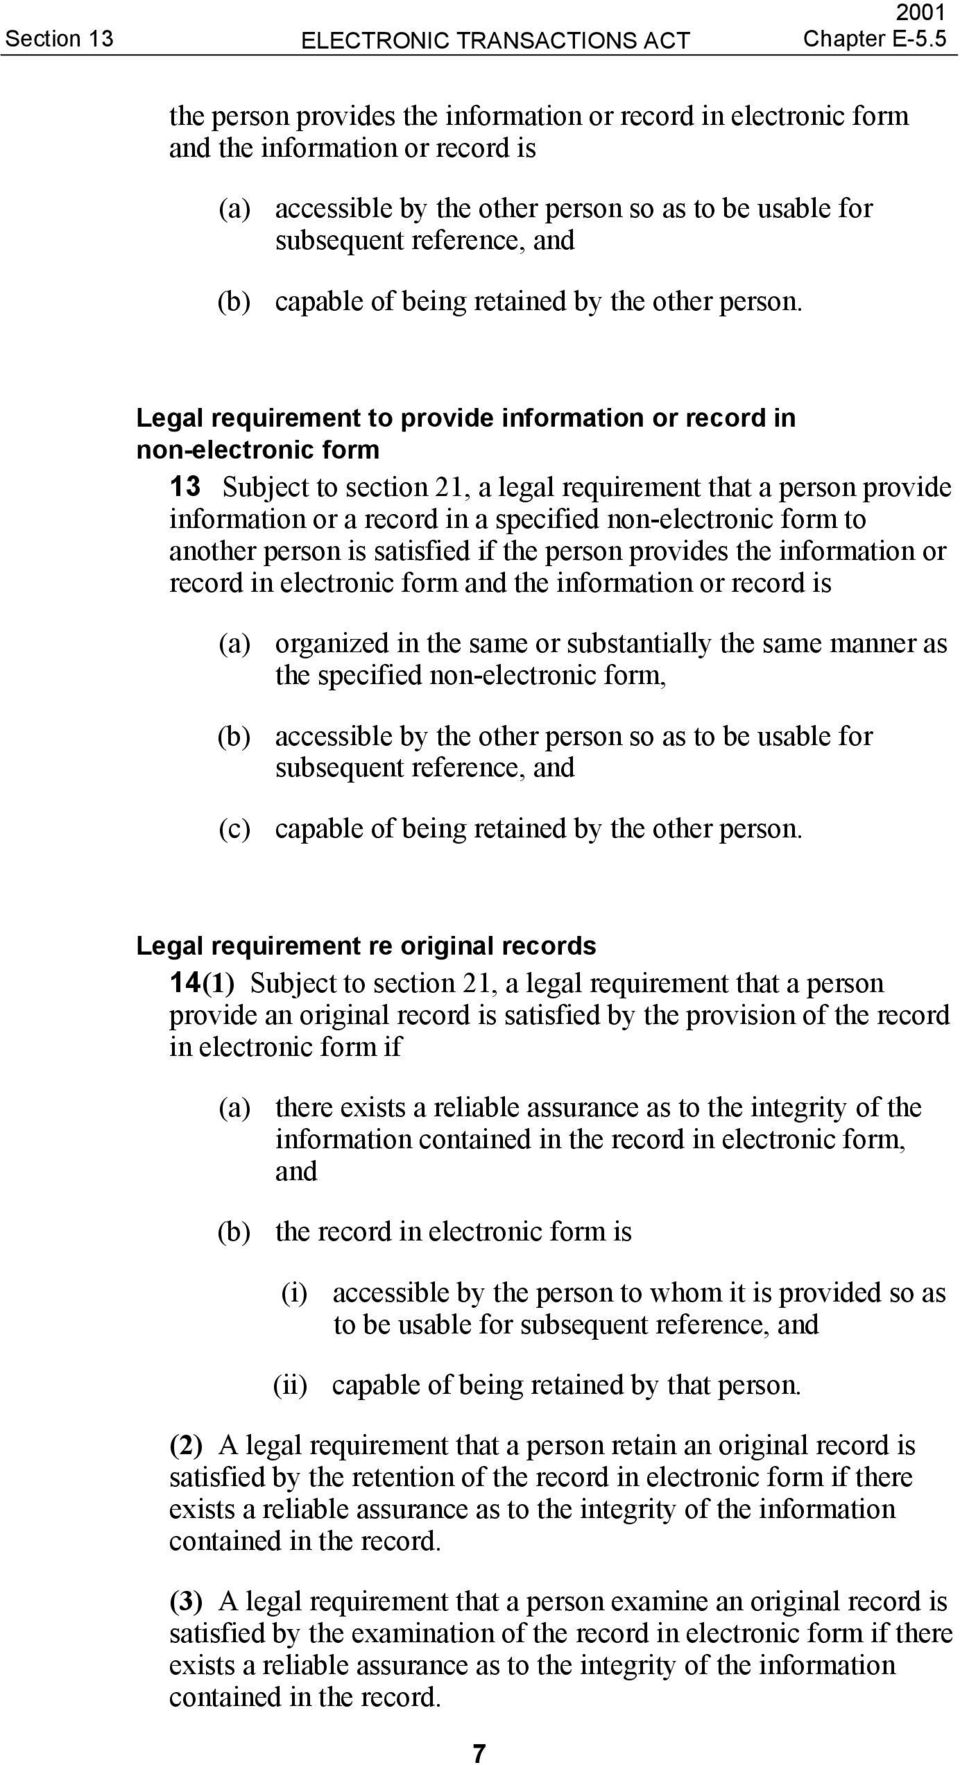 Legal requirement to provide information or record in non-electronic form 13 Subject to section 21, a legal requirement that a person provide information or a record in a specified non-electronic